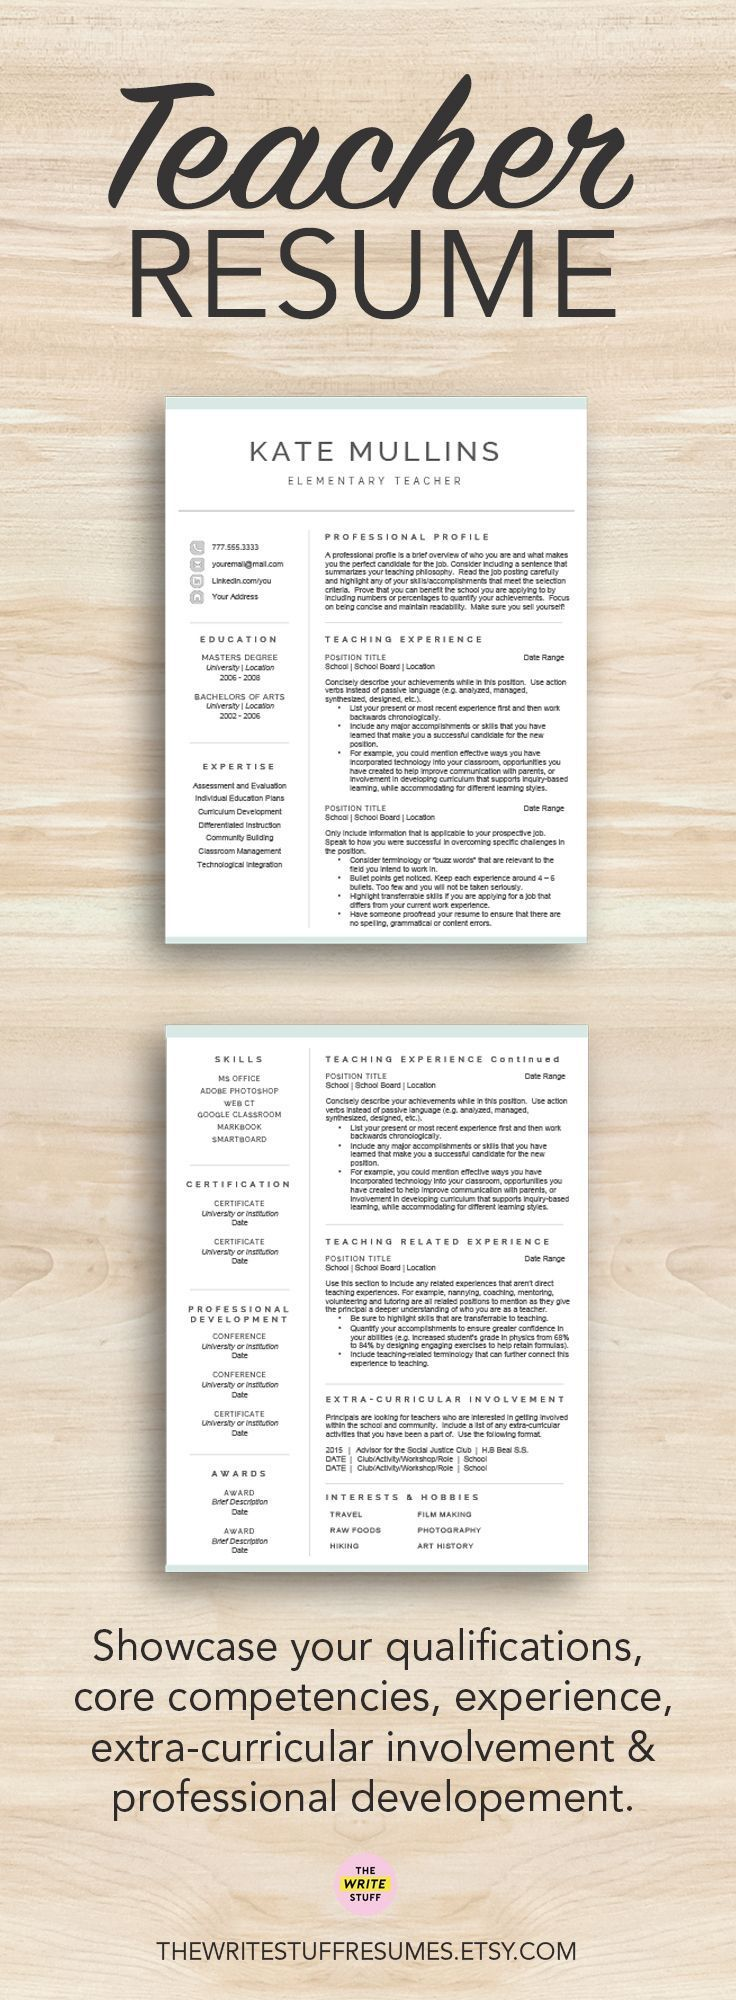 A Resume Designed For Teachers And Educators | Teacher Resume | Educator  Resume | Teacher Resume  Resume Words For Teachers